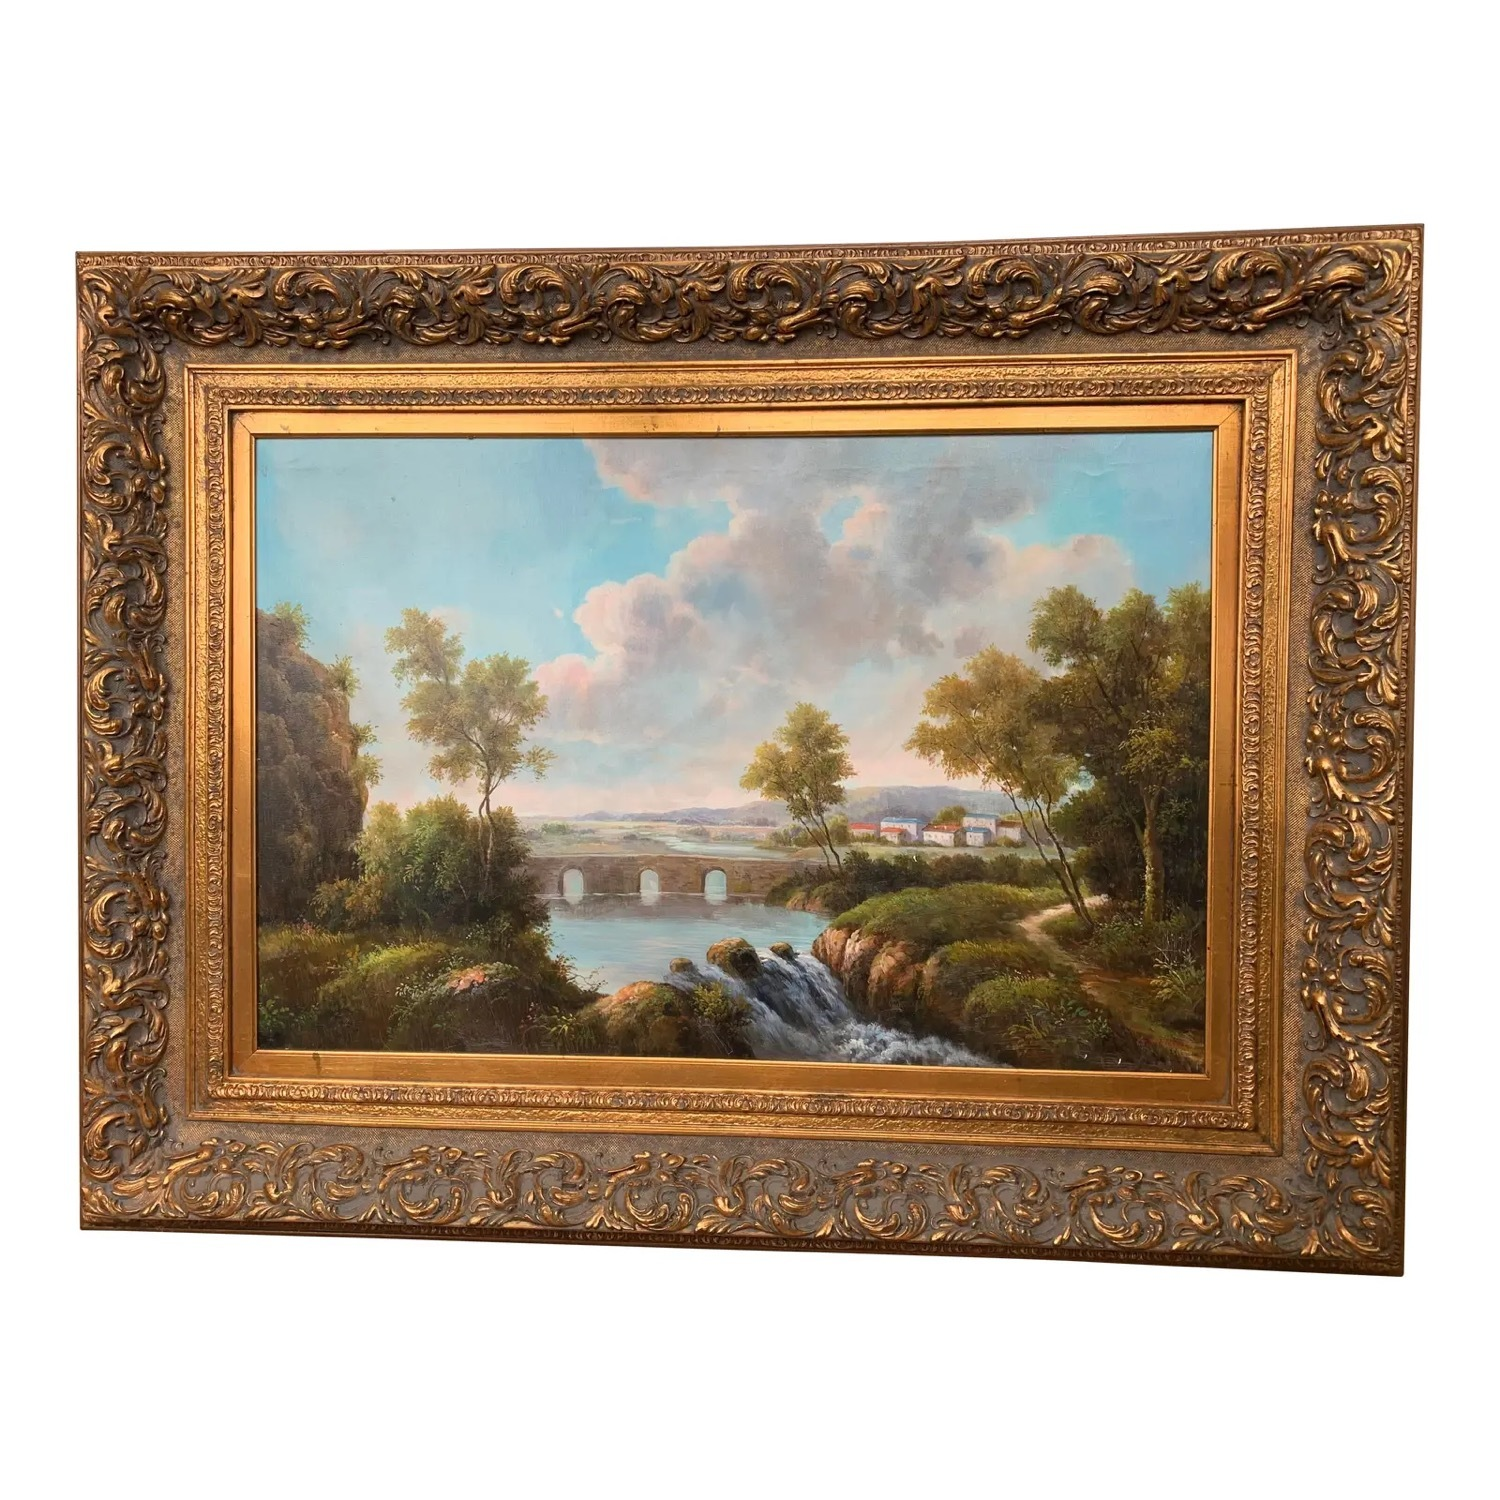 Framed Early 20th Century Oil Painting - G.Henson - image-1